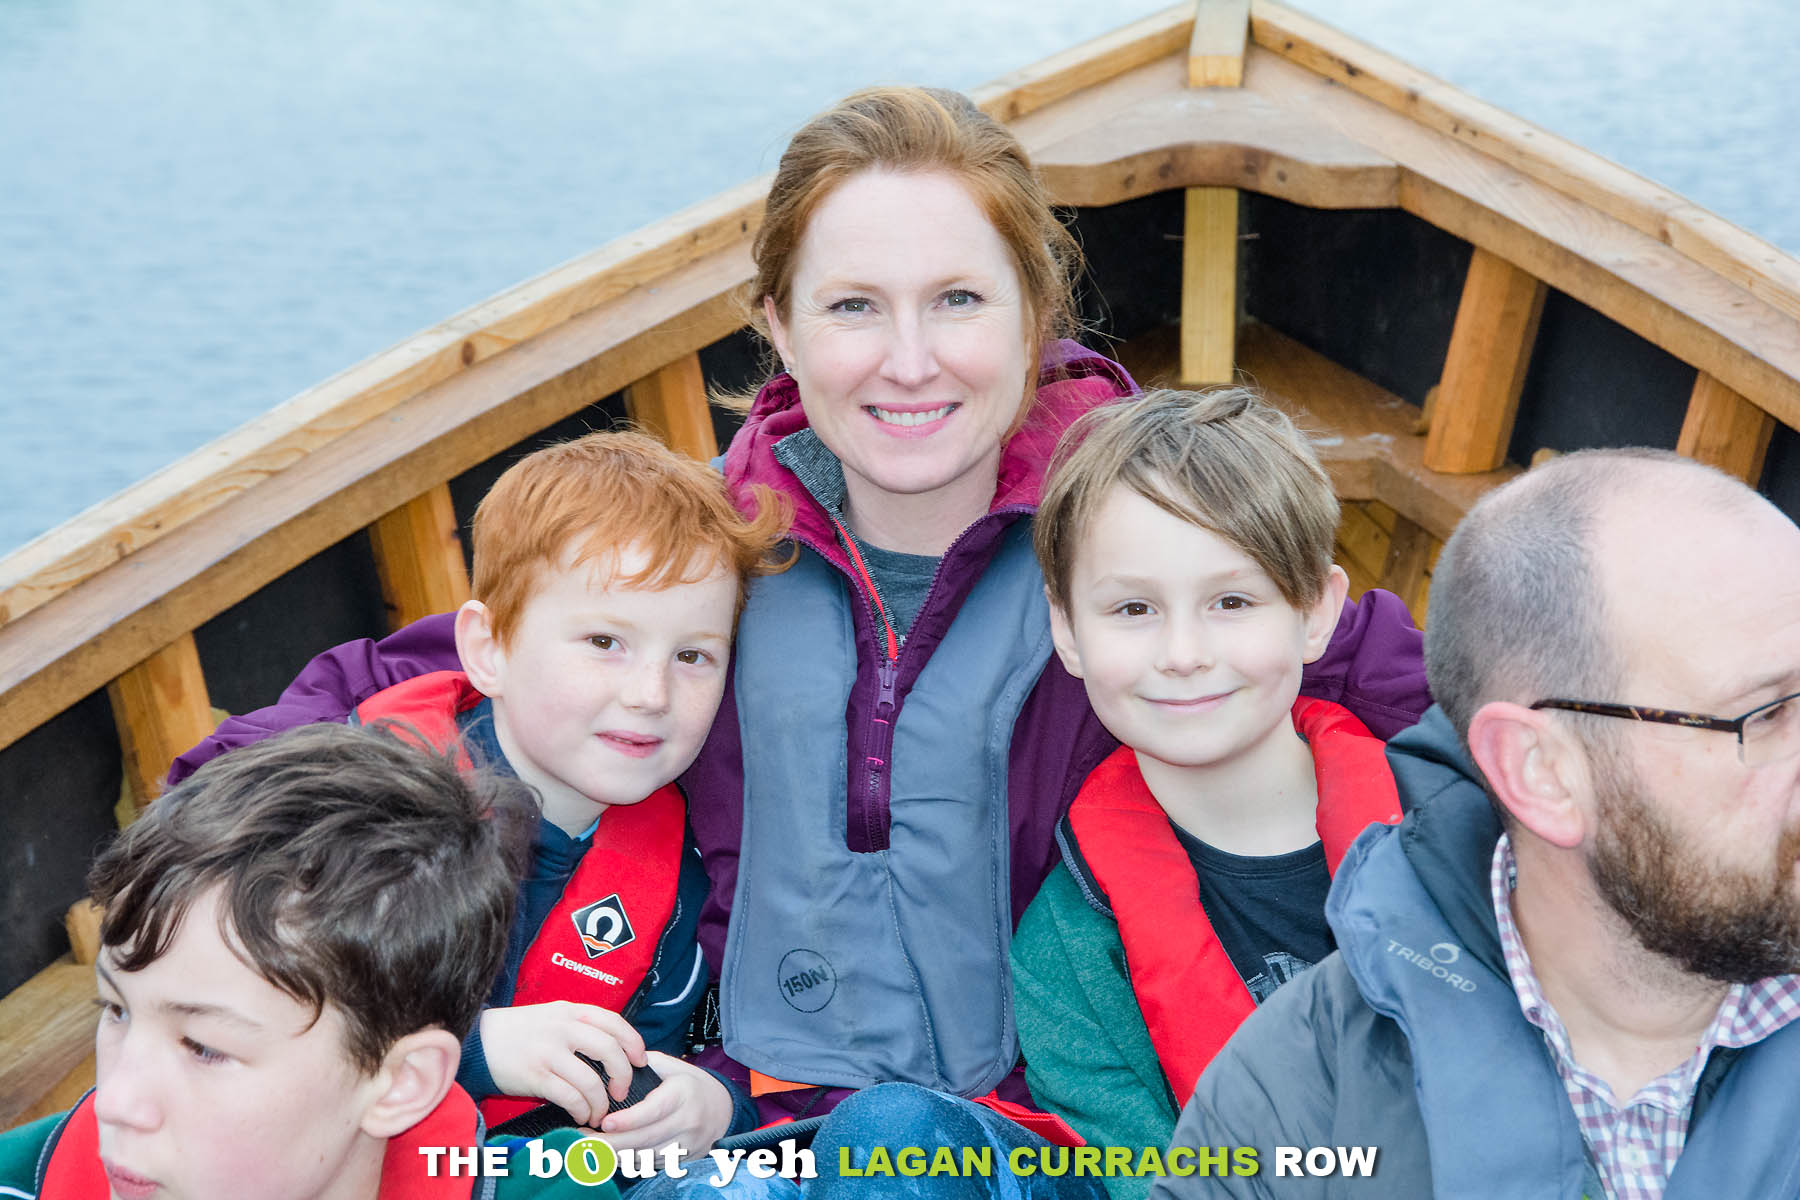 Kelly and friends enjoying the Bout Yeh Lagan Currachs row - photo 9223.